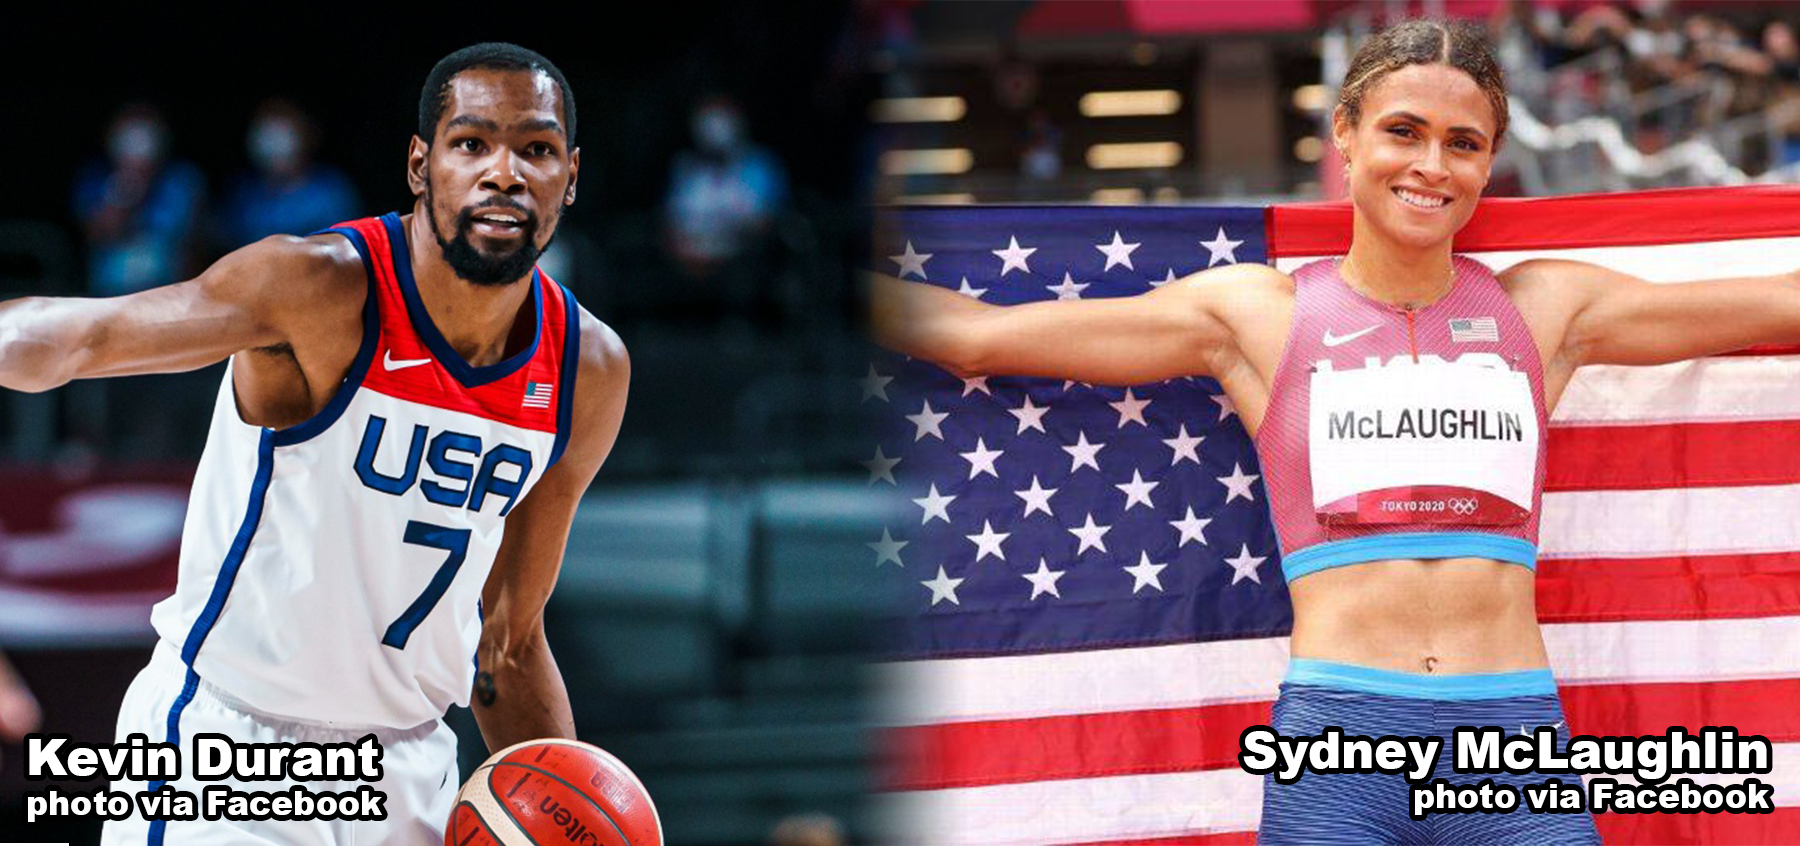 Kevin Durant and Sydney McLaughlin